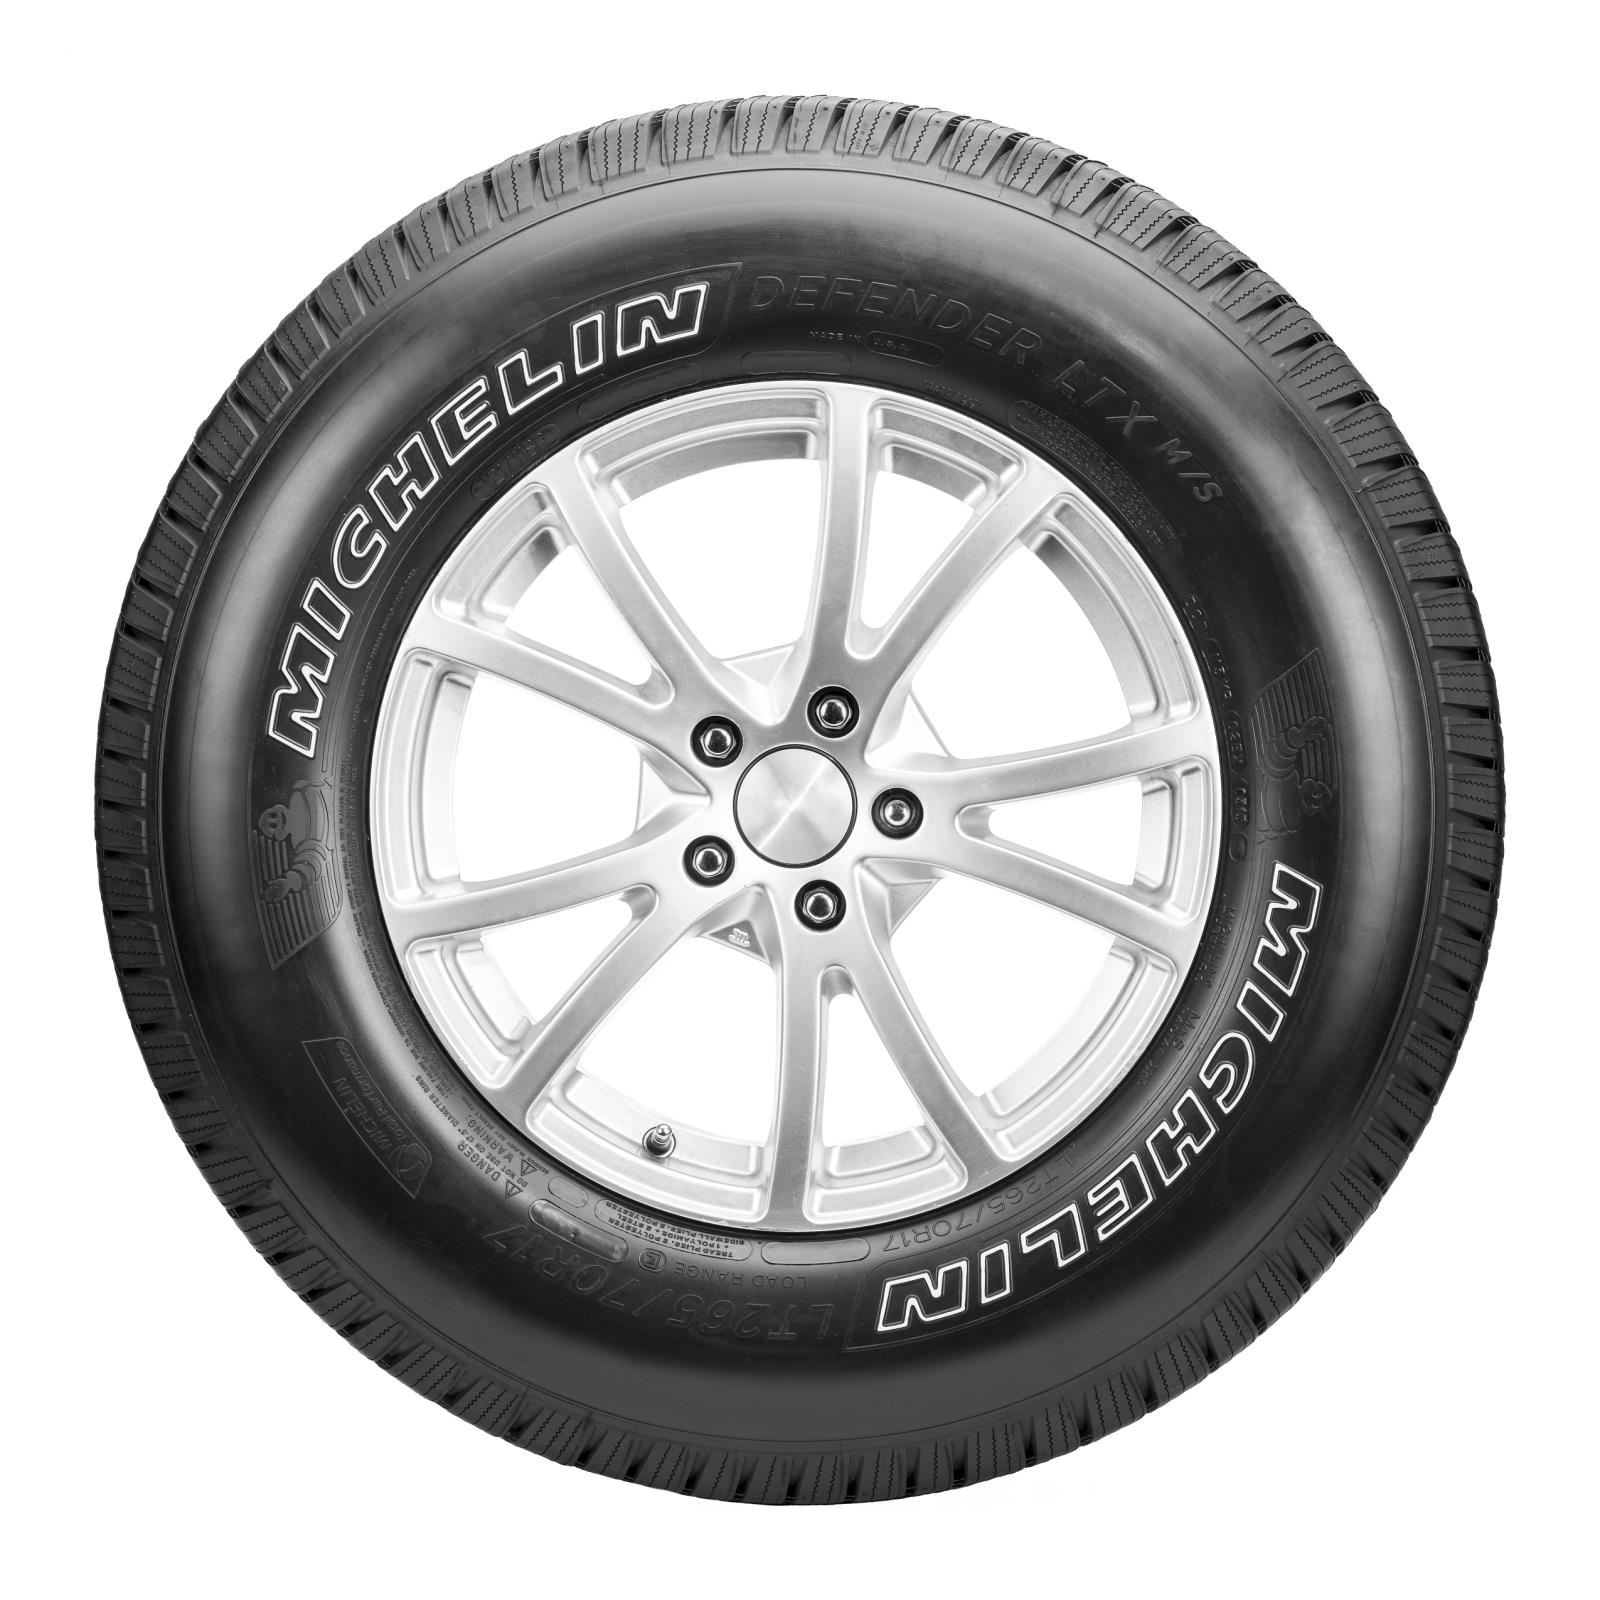 michelin defender ltx m s delivers strong long lasting tire for light trucks and suvs. Black Bedroom Furniture Sets. Home Design Ideas